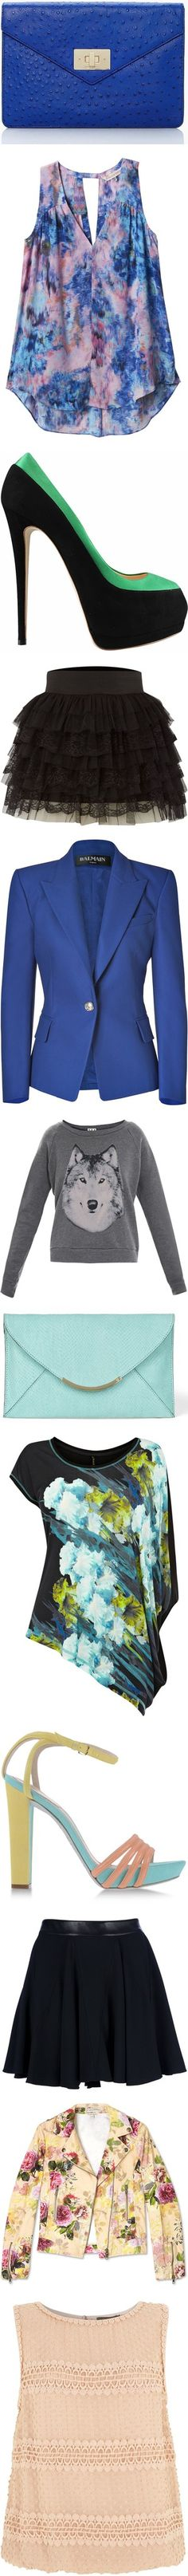 """""""Top Products for Apr 9th, 2013"""" by polyvore ❤ liked on Polyvore"""